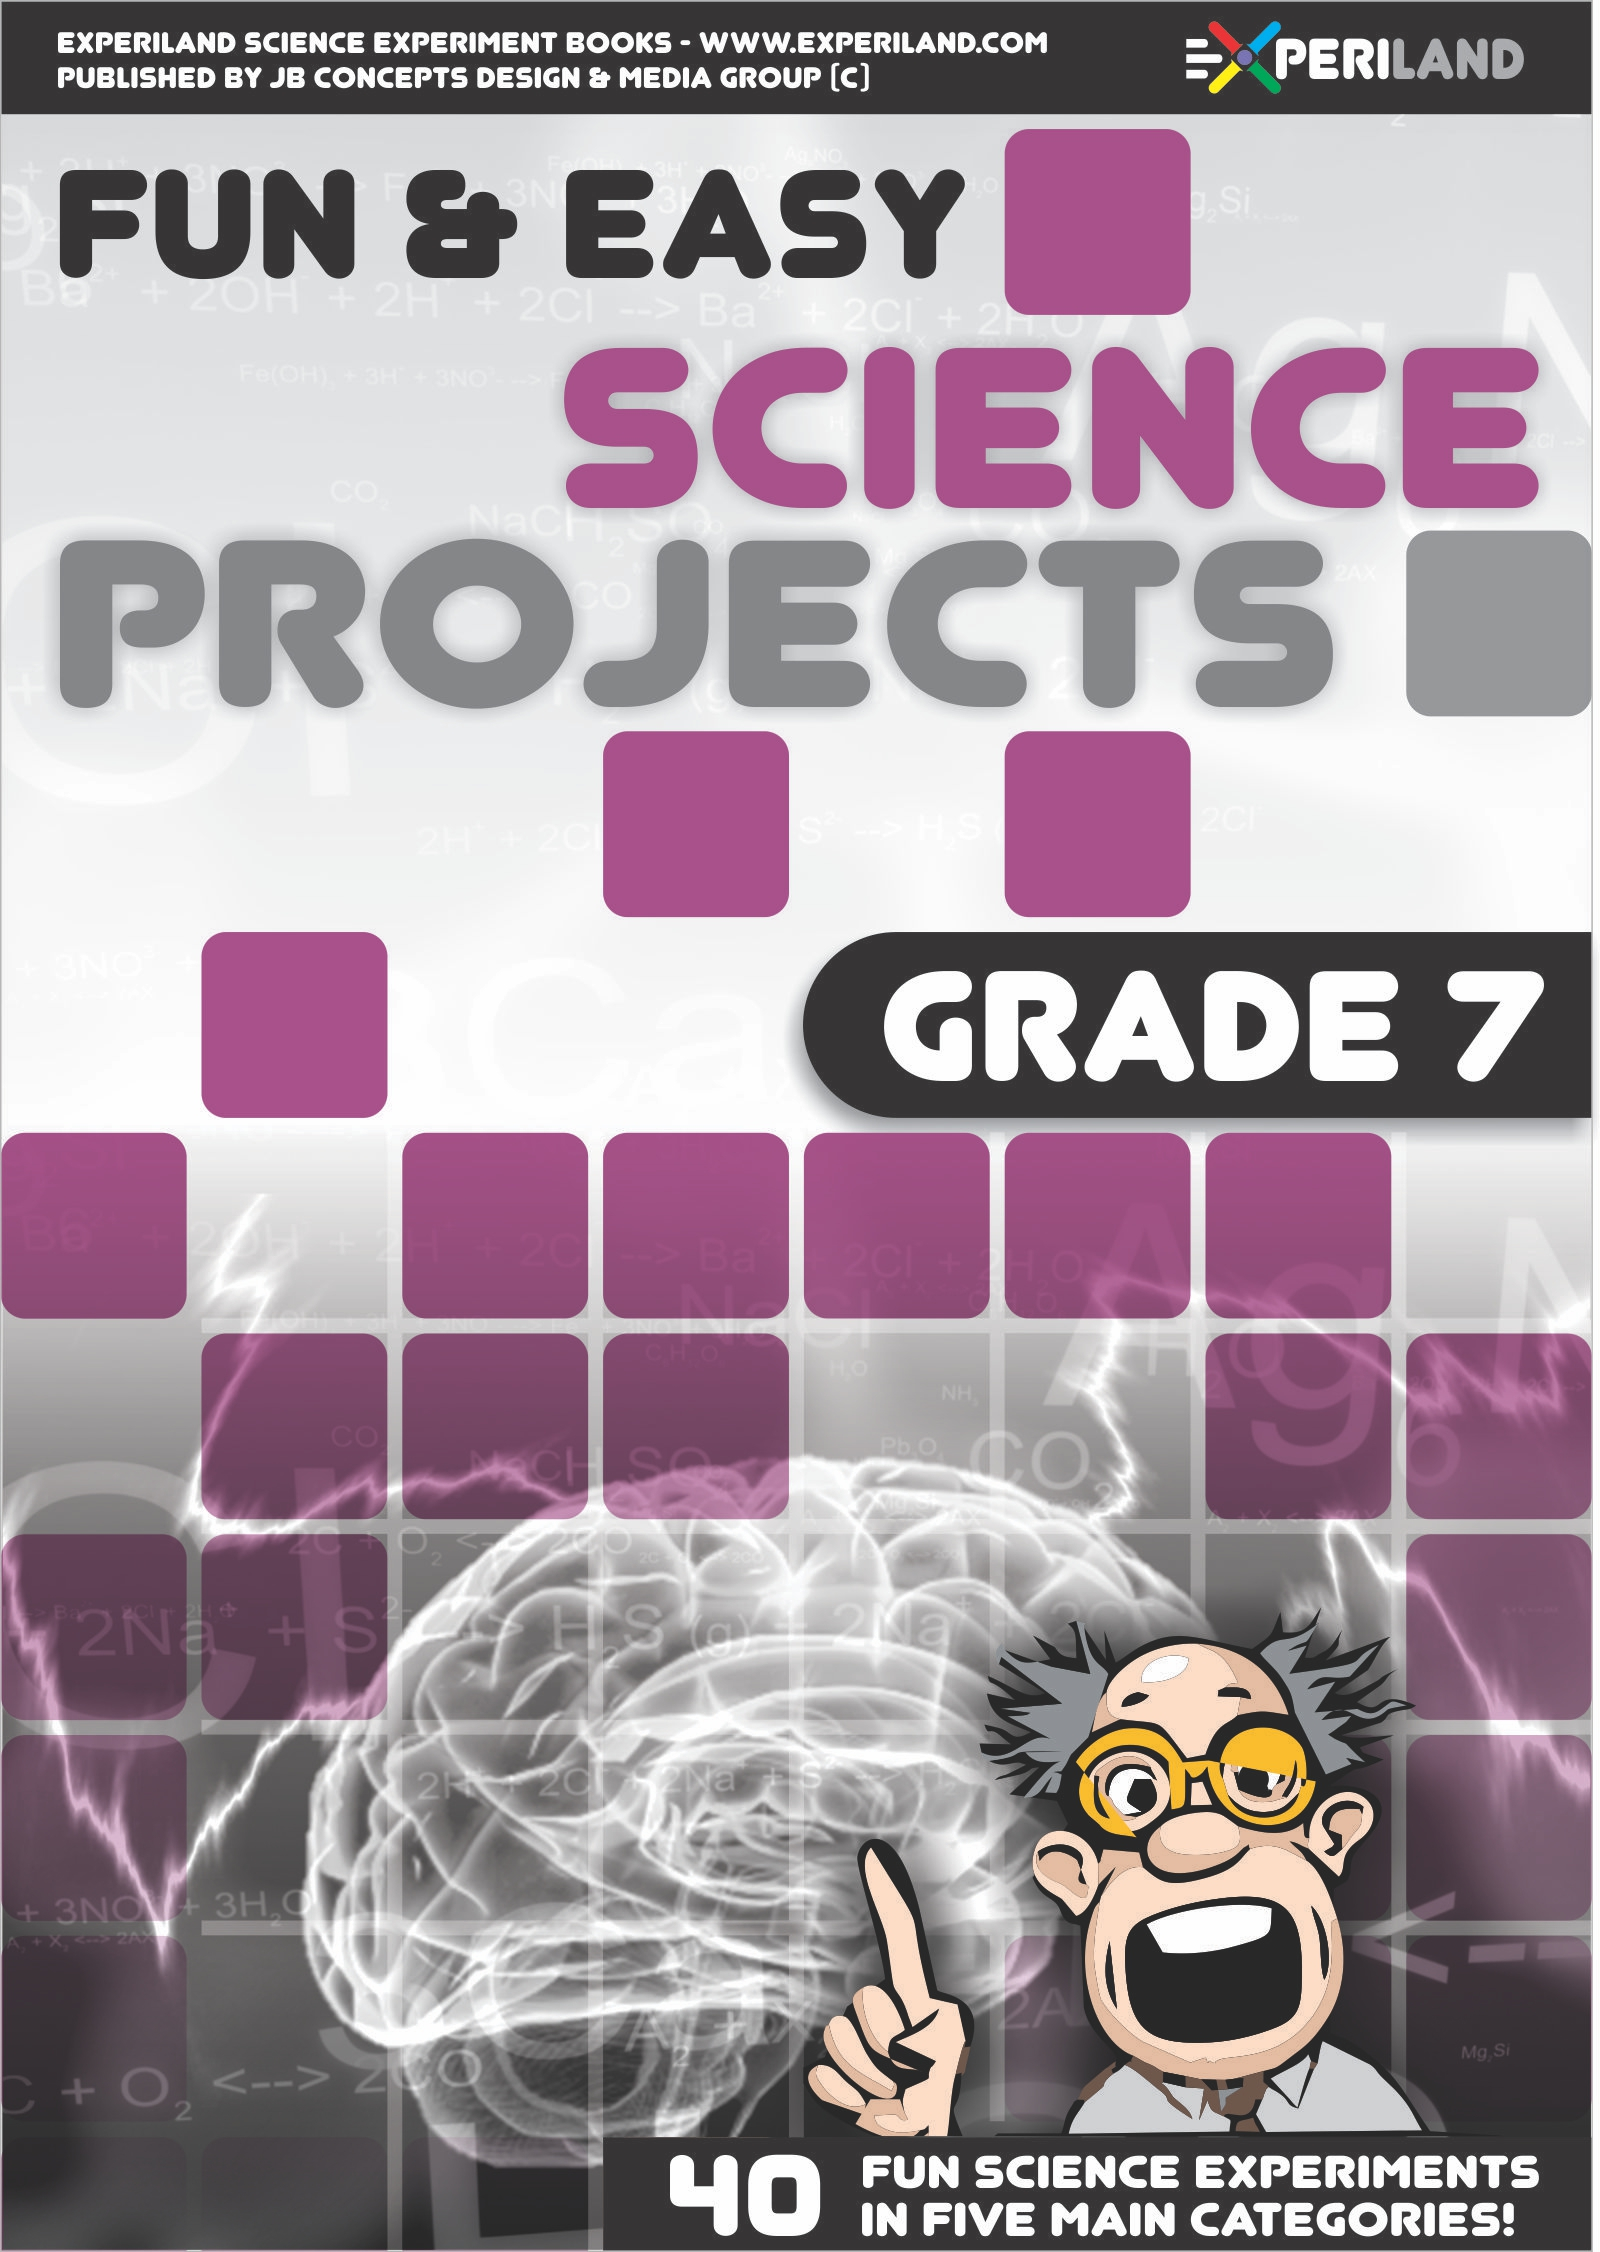 Fun Easy Science Projects Grade 7